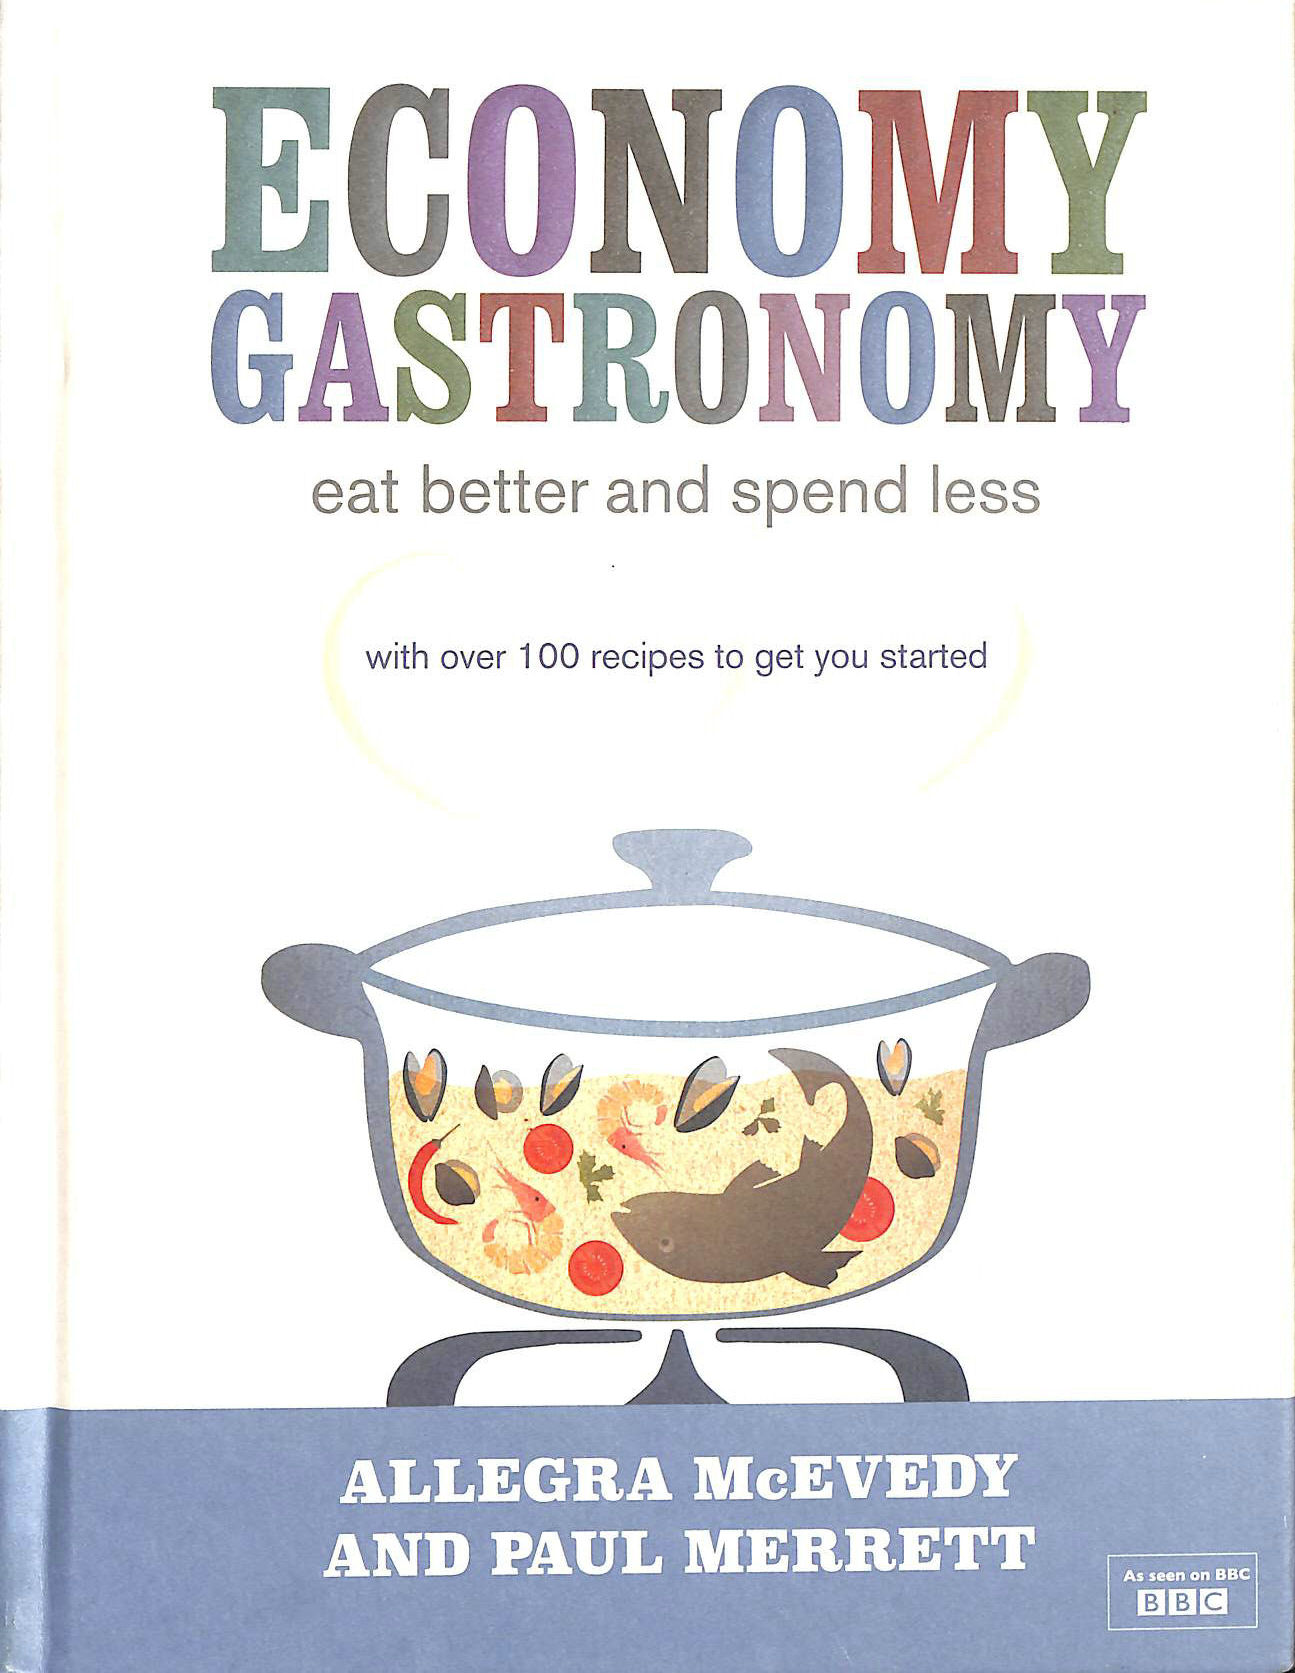 Image for Economy Gastronomy: Eat Better and Spend Less